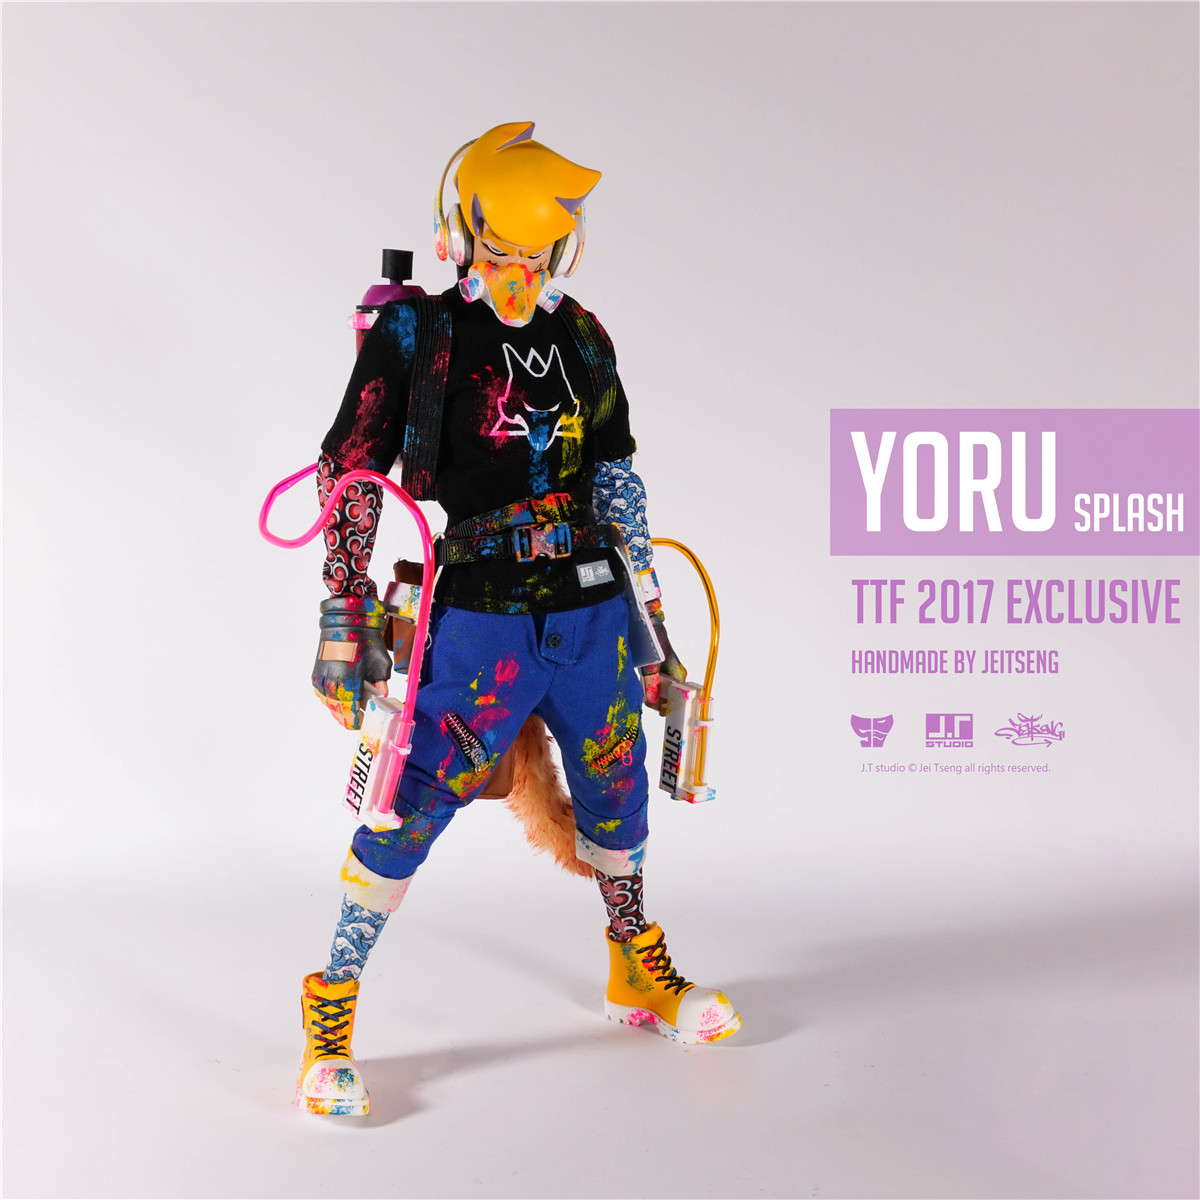 YORU SPLASH